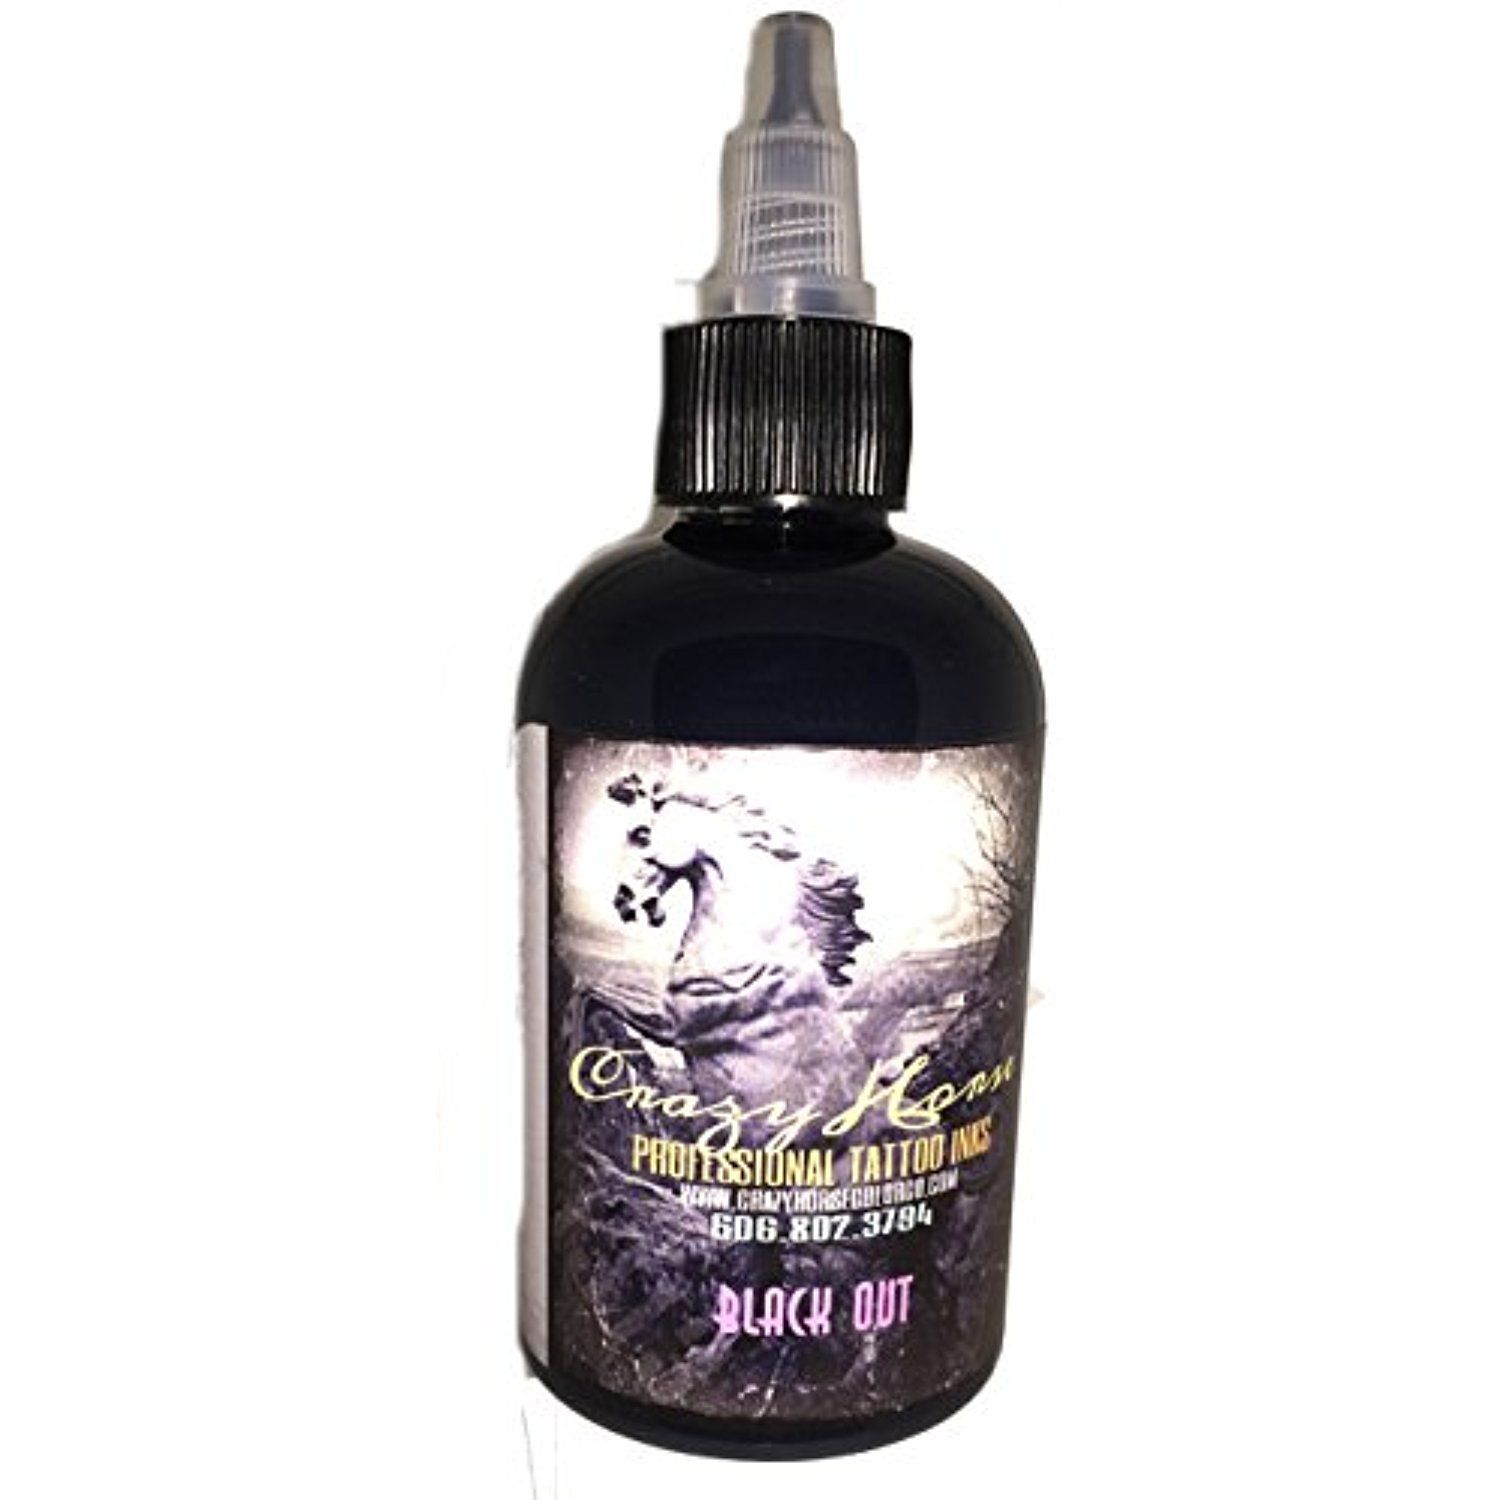 Crazyhorse High Quality Tattoo Ink Black Out You Can Get More Details By Clicking On The Image This Is An Affiliate Link T Black Ink Tattoos Tattoo Supplies Ink